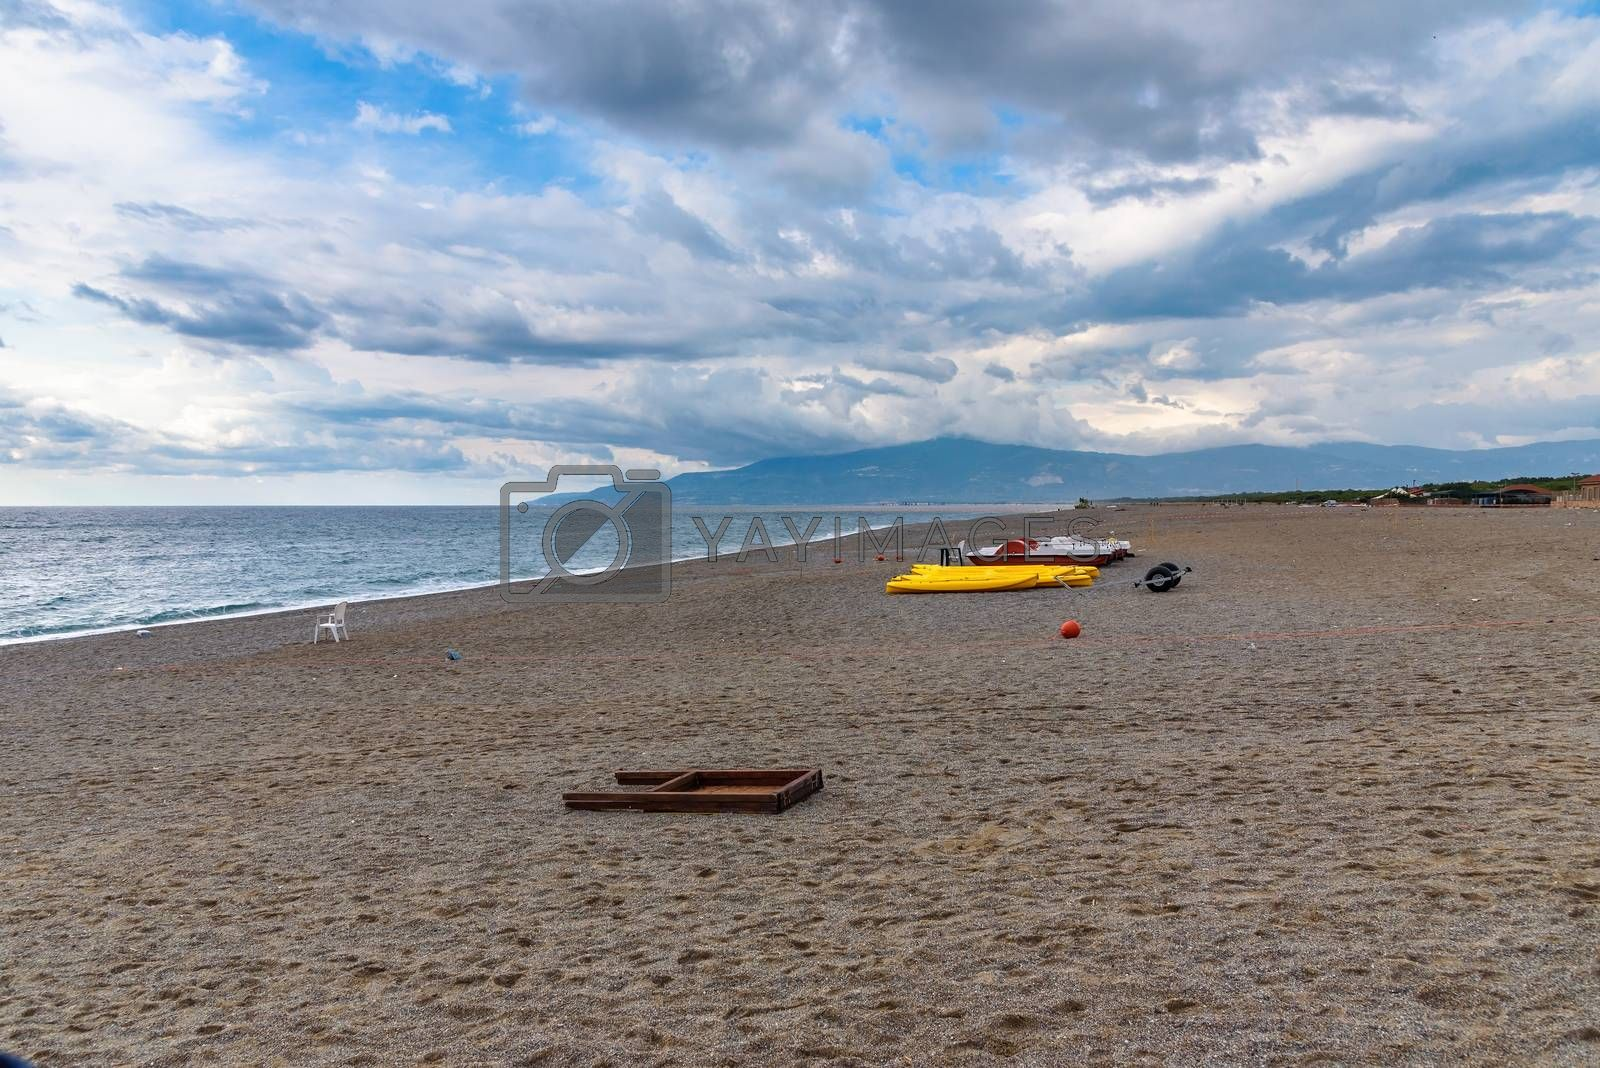 Royalty free image of Evening sky over the calabrian beach by mkos83